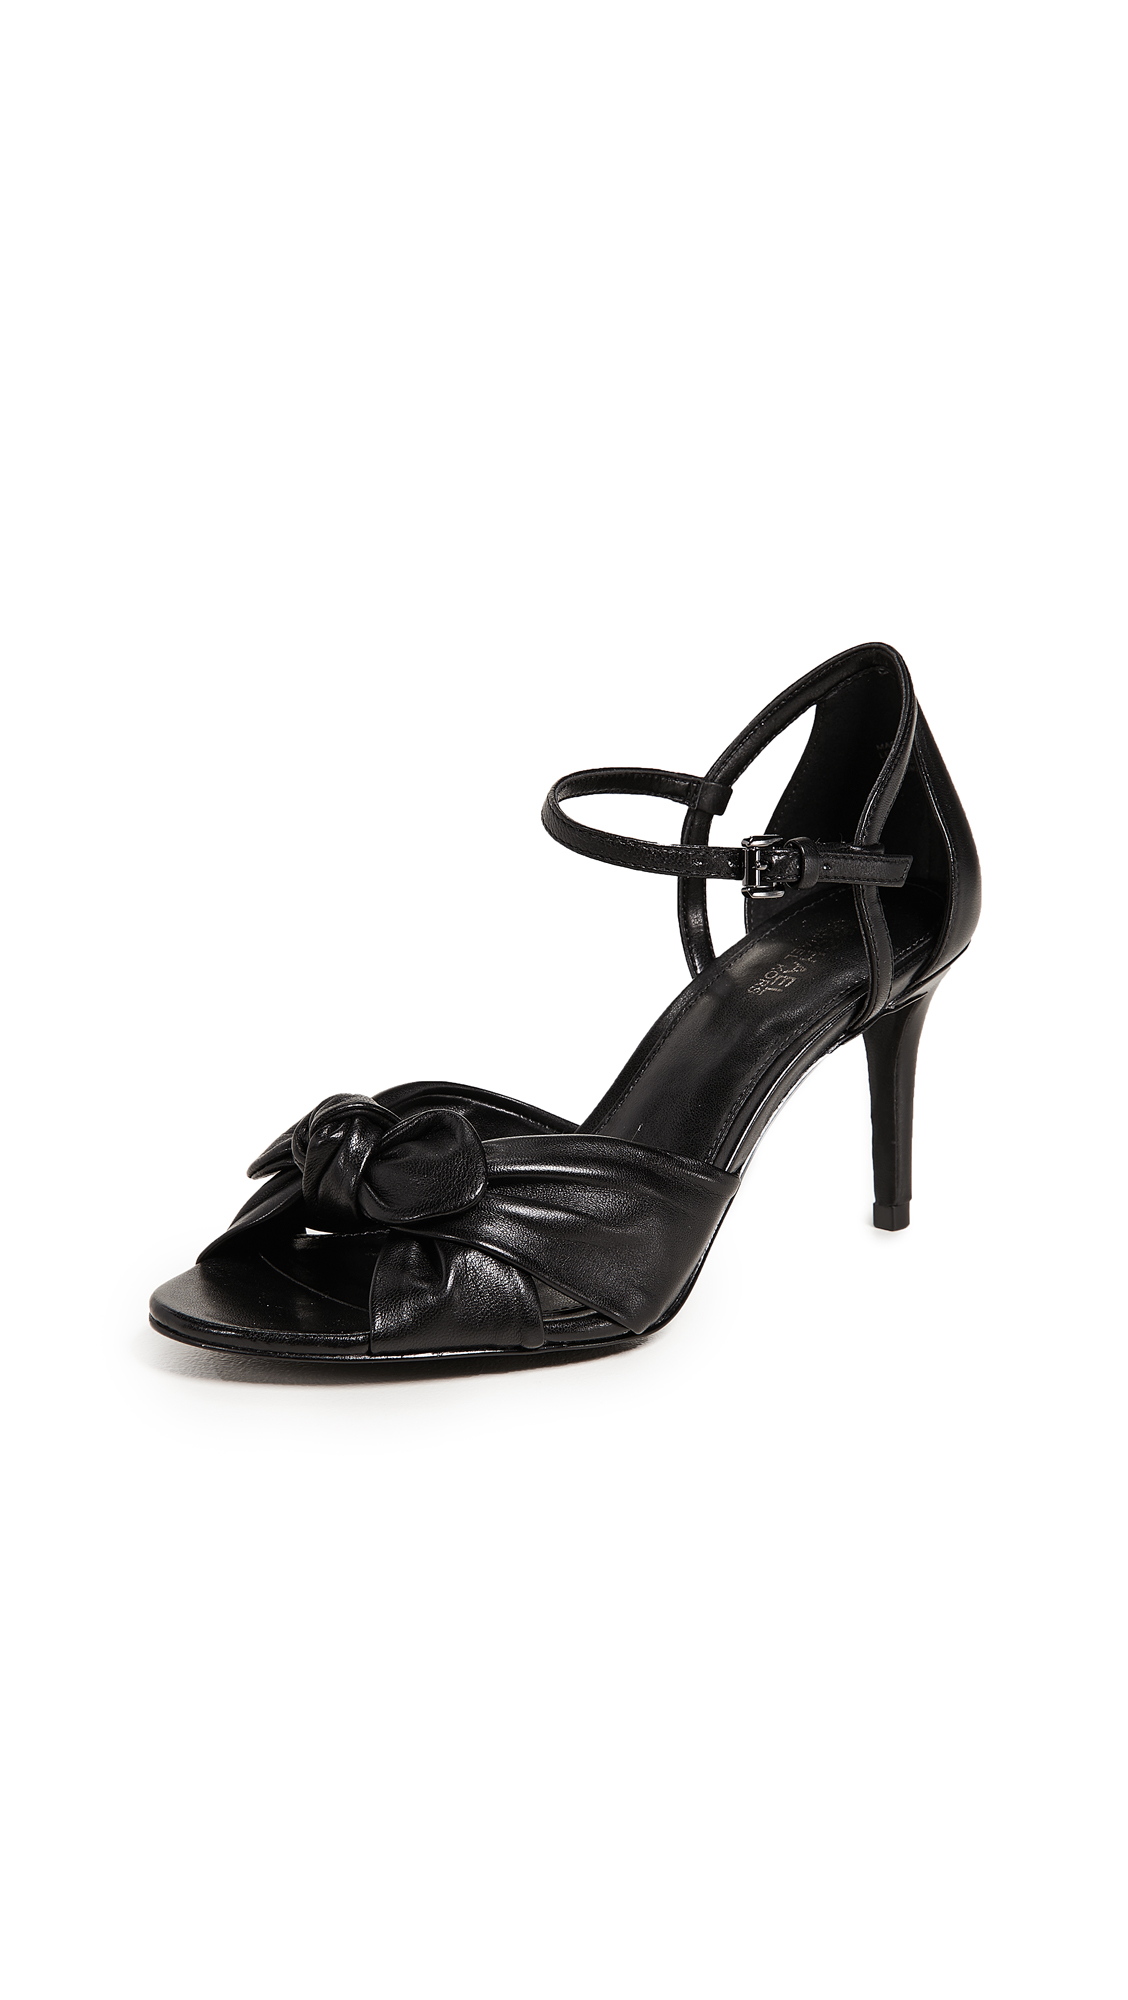 MICHAEL Michael Kors Pippa Strappy Sandals - Black